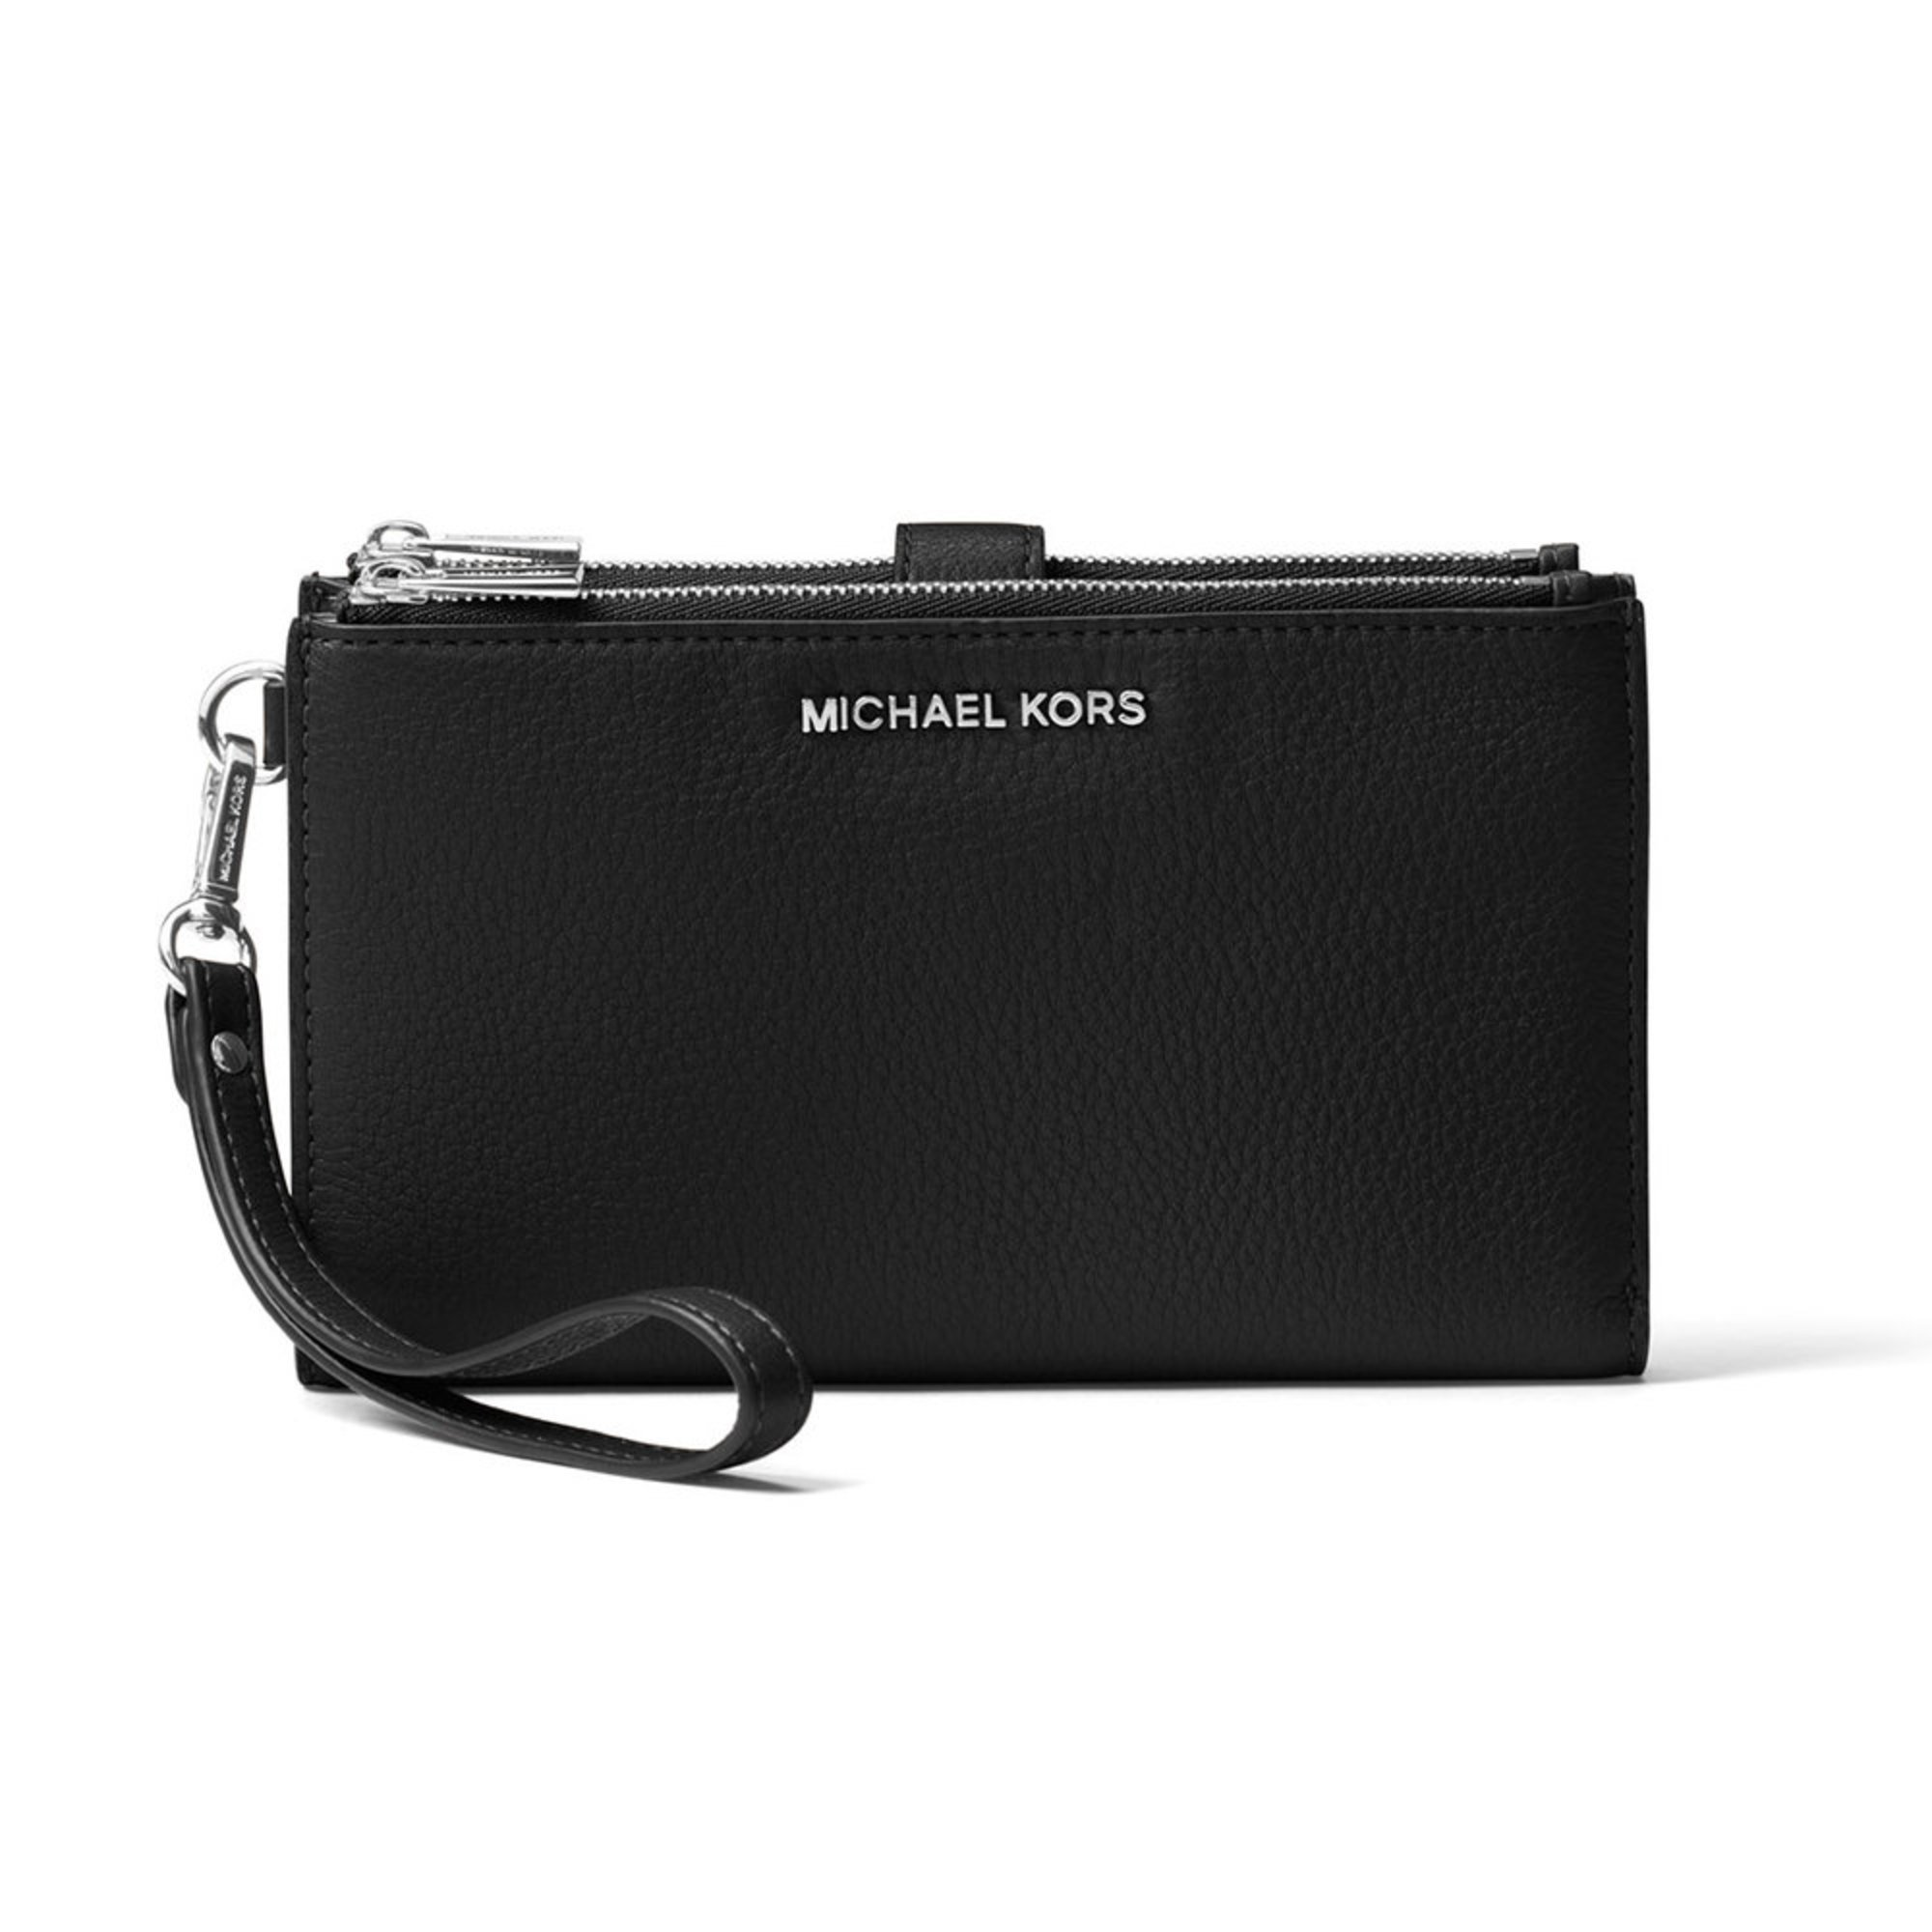 005620342780 Michael Kors Double Zip Wristlet | Wristlets | Handbags & Sunglasses ...